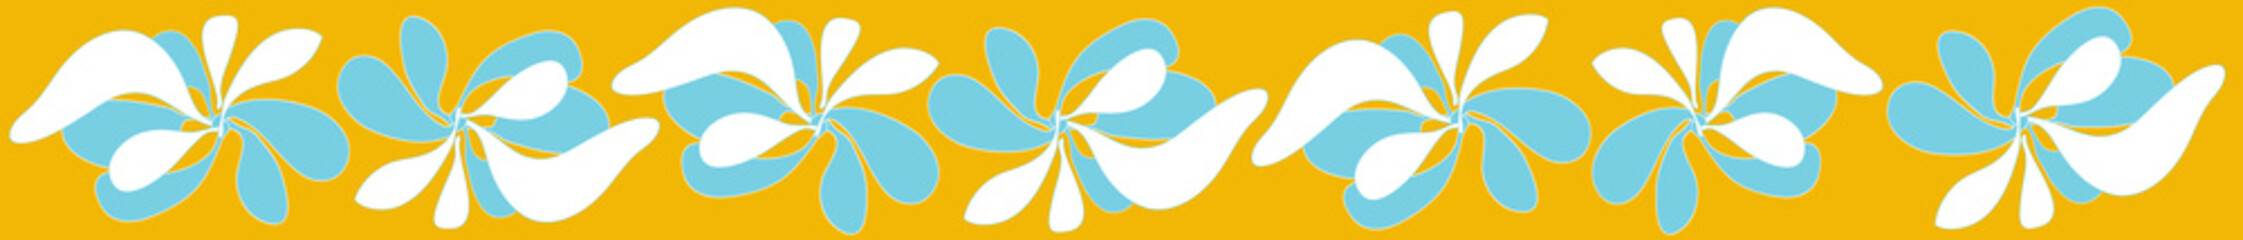 threading graphic flower yellow background